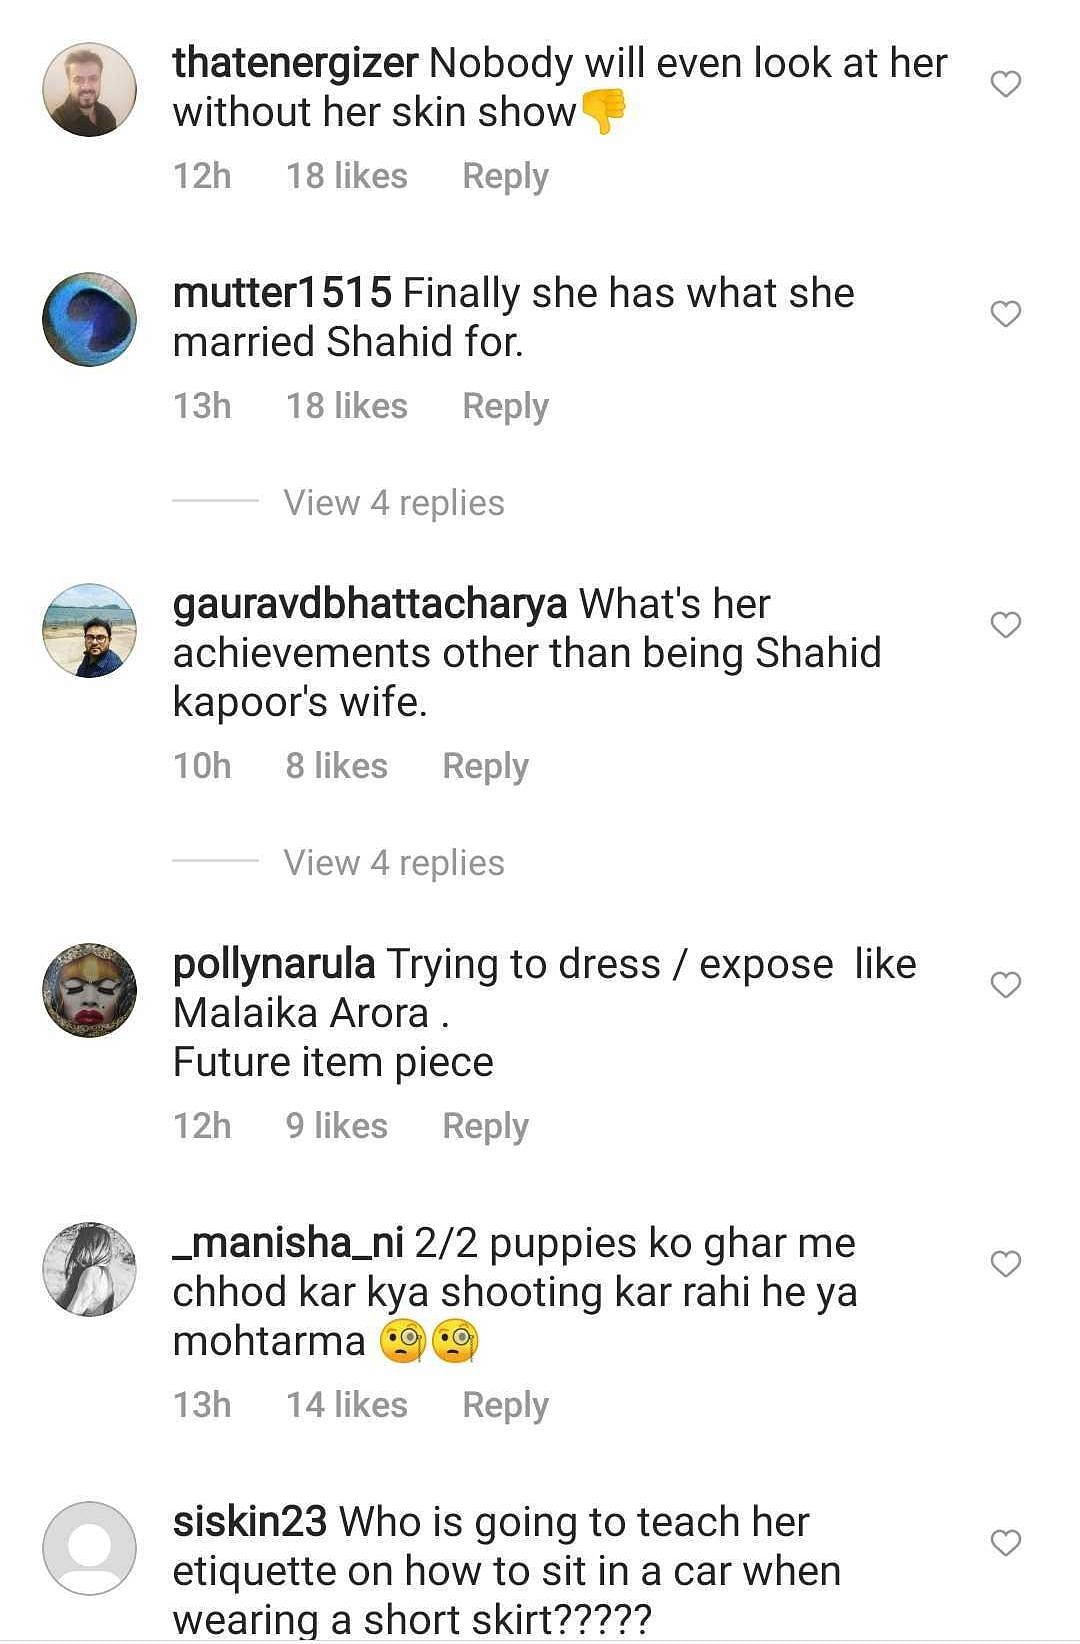 Watch: Shahid Kapoor's wife Mira trolled for wearing her 'daughter's skirt' in public